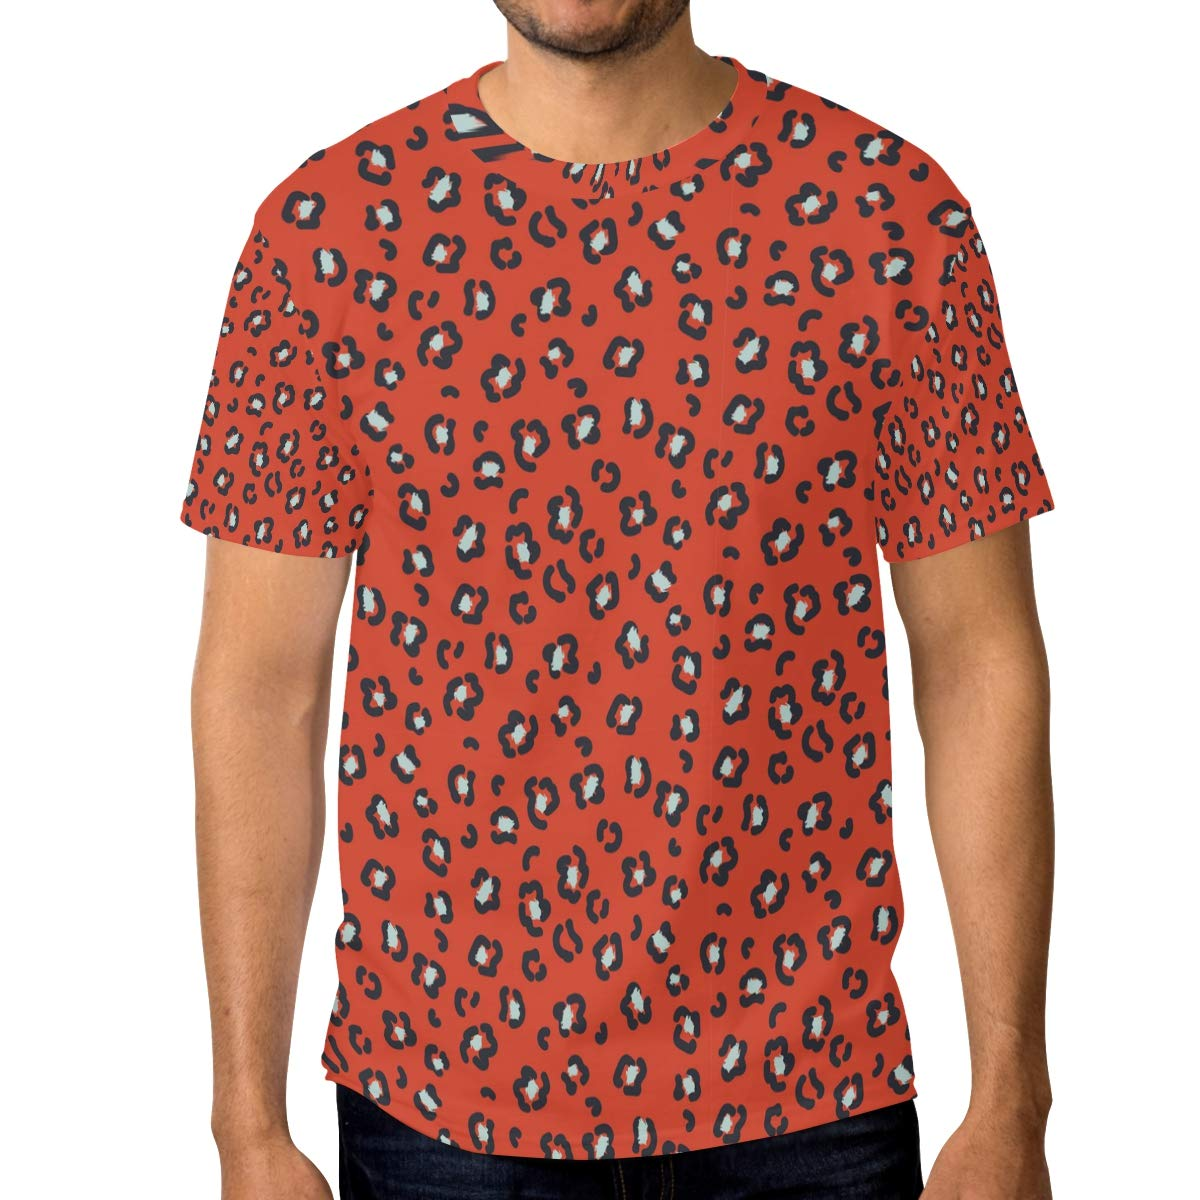 Red Circle Leopard Print Mens T Shirts Graphic Funny Body Print Short T-Shirt Unisex Pullover Blouse